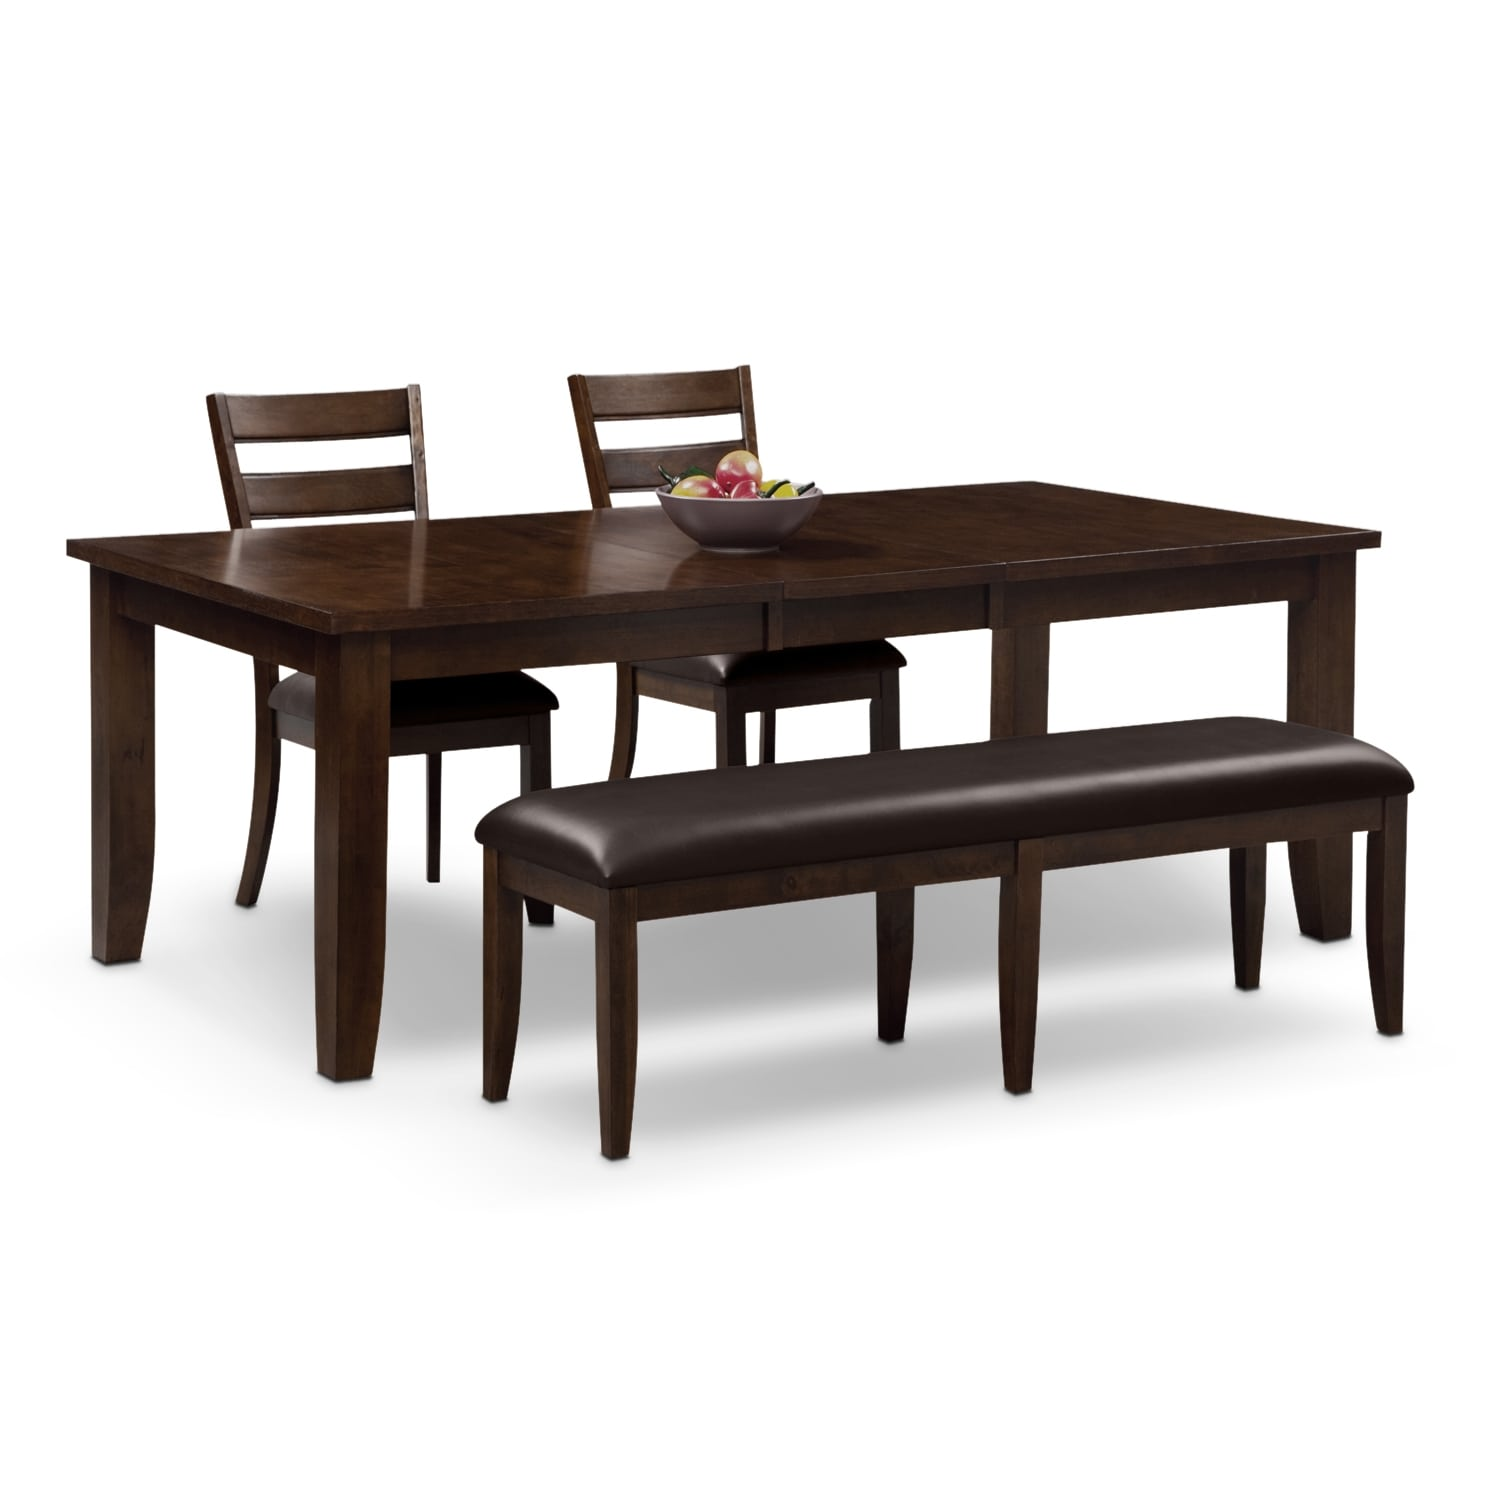 Abaco Table, 2 Chairs And Bench   Brown